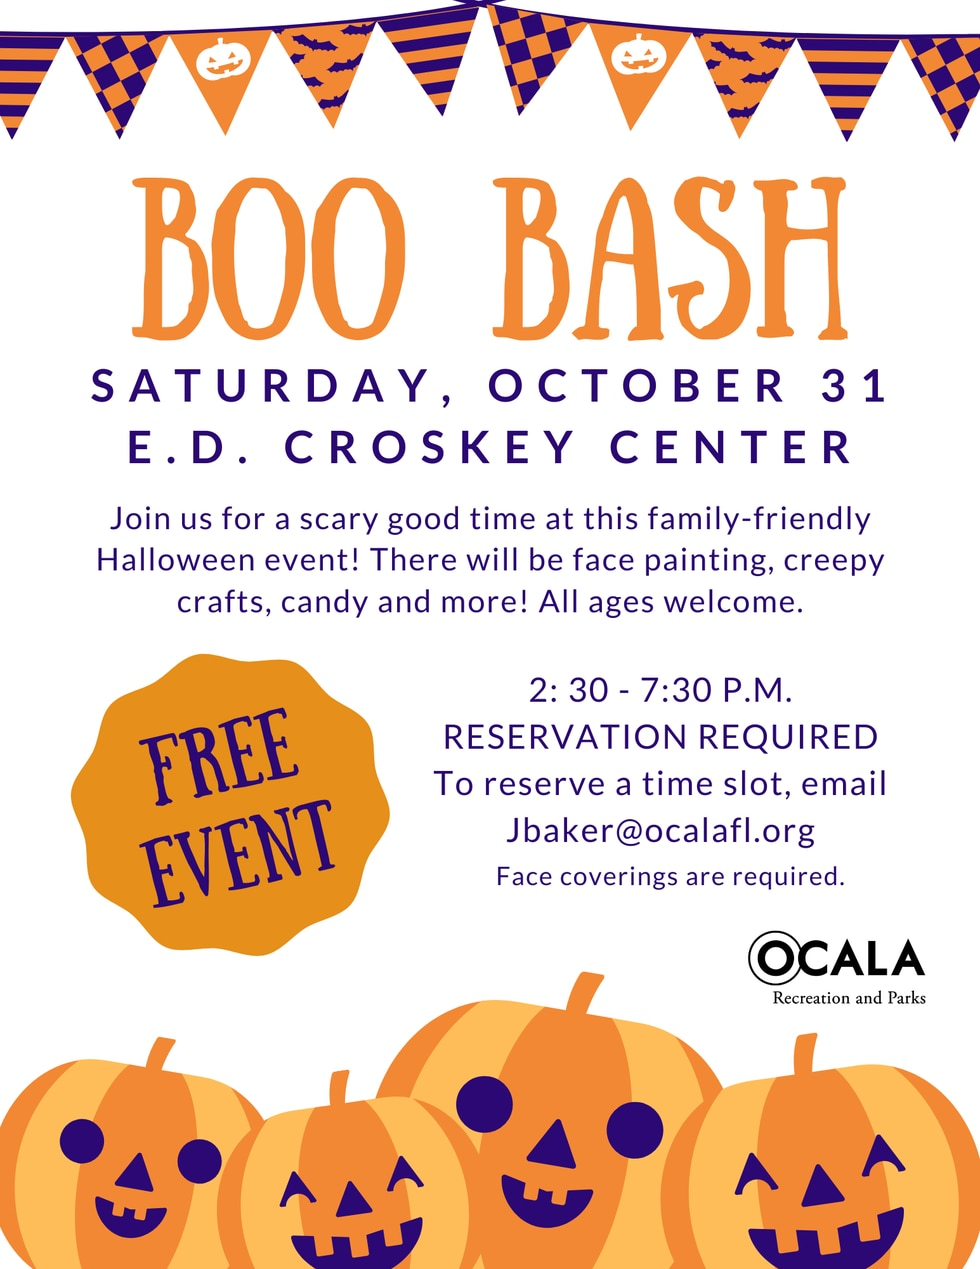 Ocala's annual 'Boo Bash' event is still on, with costumes, arts and crafts and...